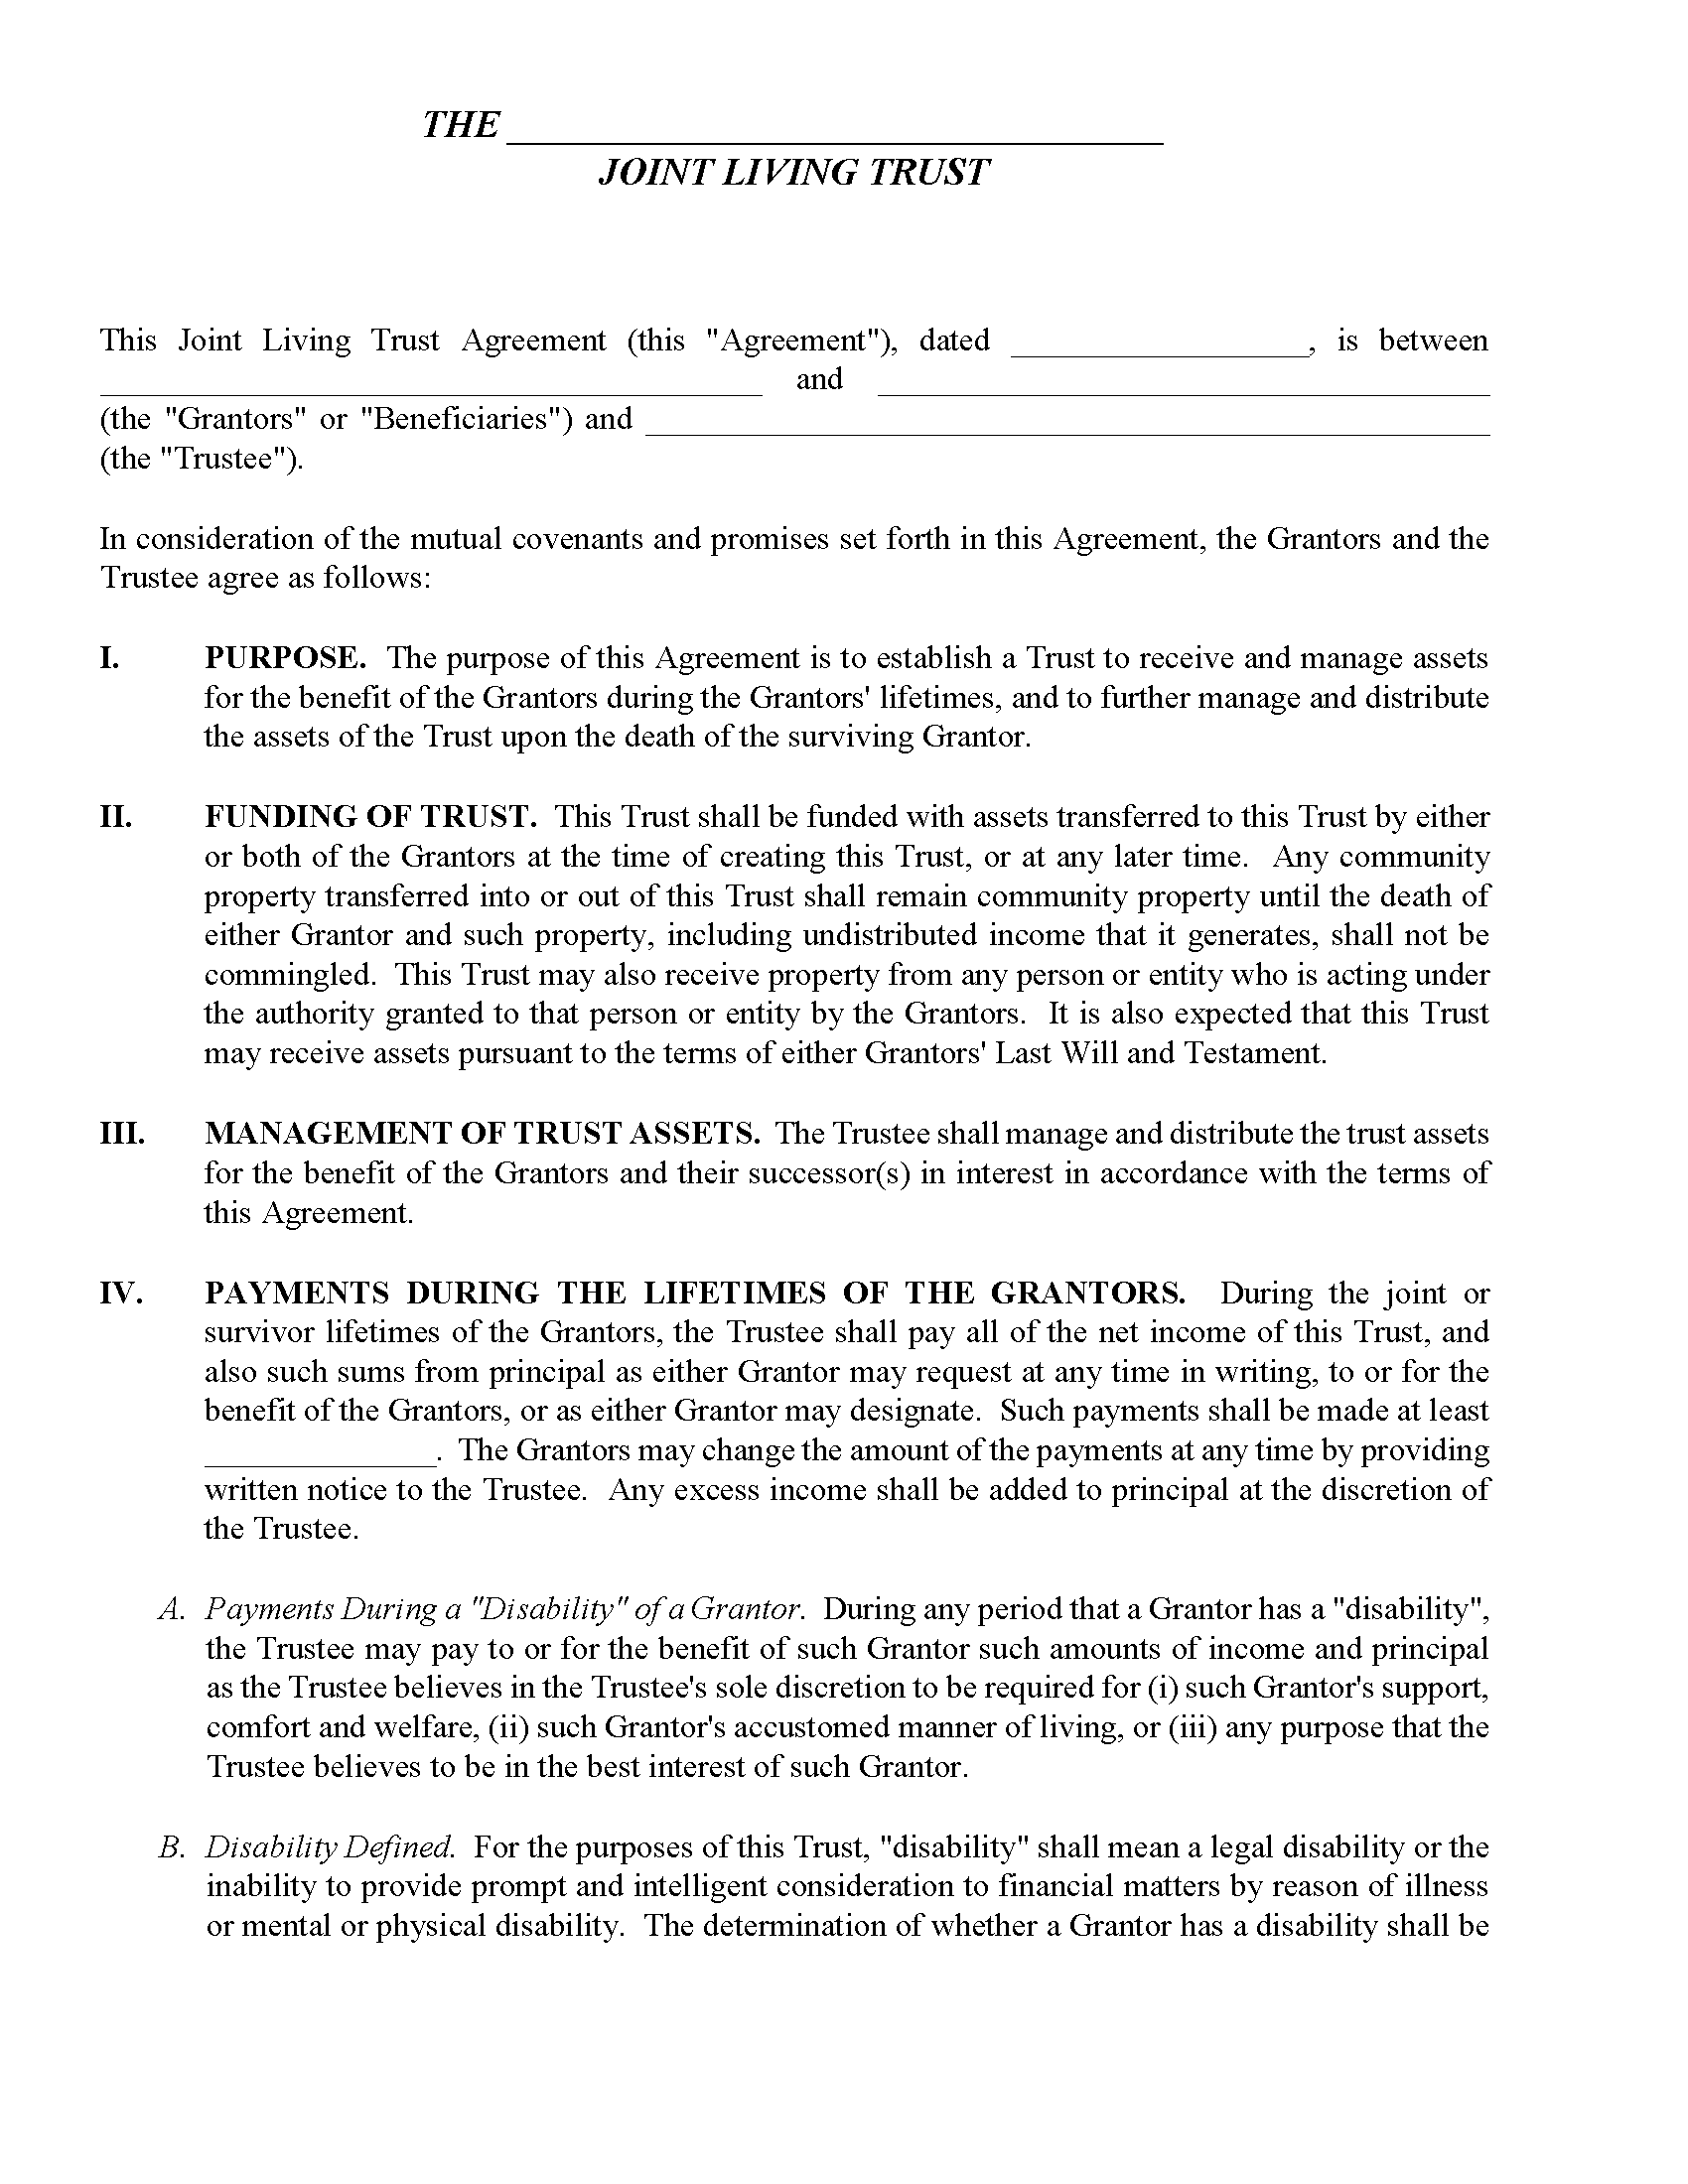 Joint Living Trust Forms